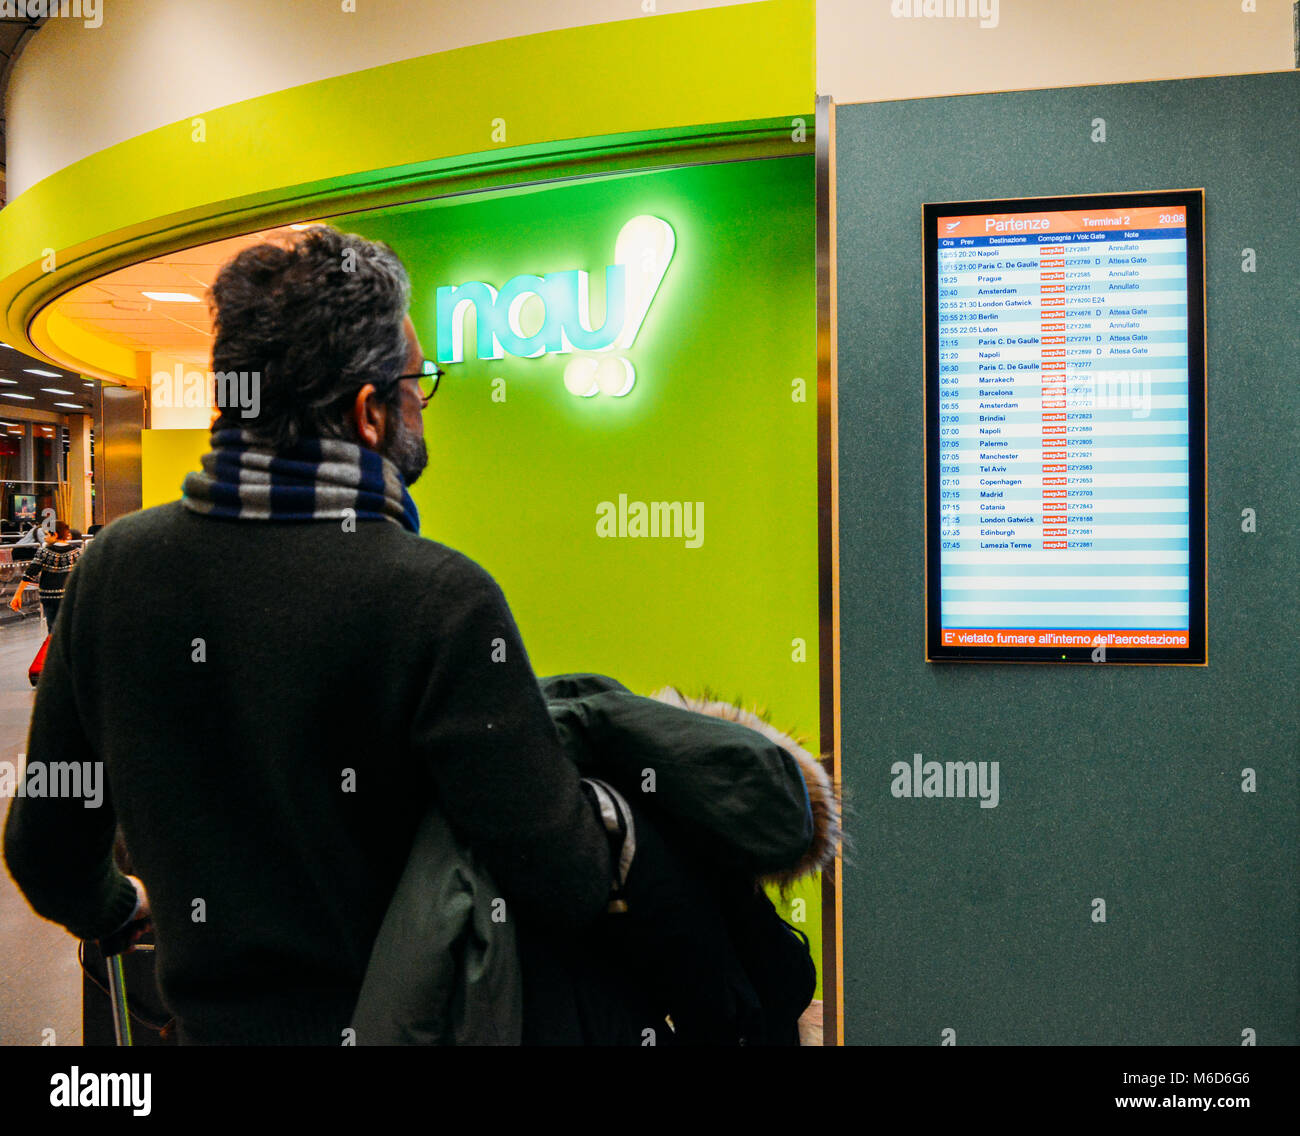 Milan, Italy. 2nd March, 2018. Milan Malpensa Airport - Mar 2nd, 2018: Male passenger looks at the flight information - Stock Image